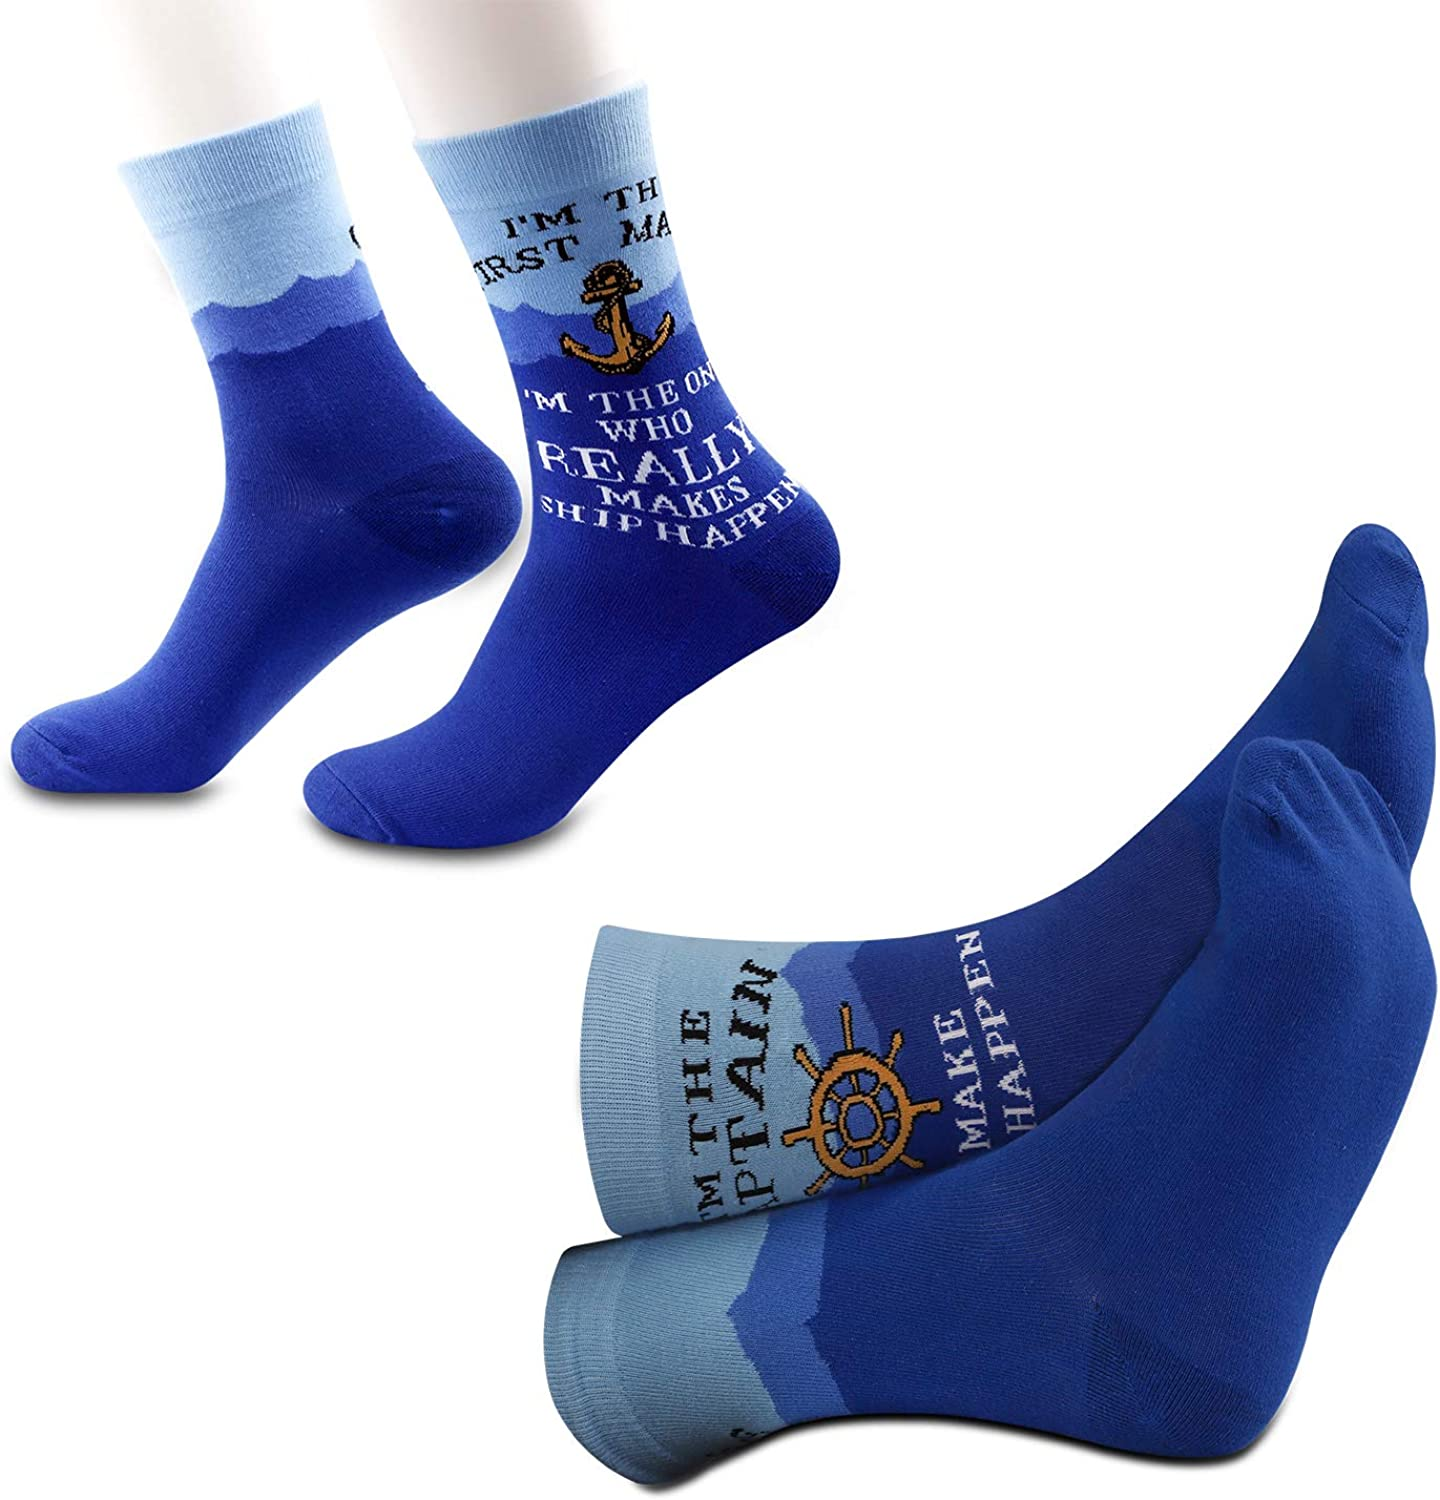 2PAIRS Captain and First Mate Novelty Socks Set Matching Boating Socks Boat Sailor Couples Gift